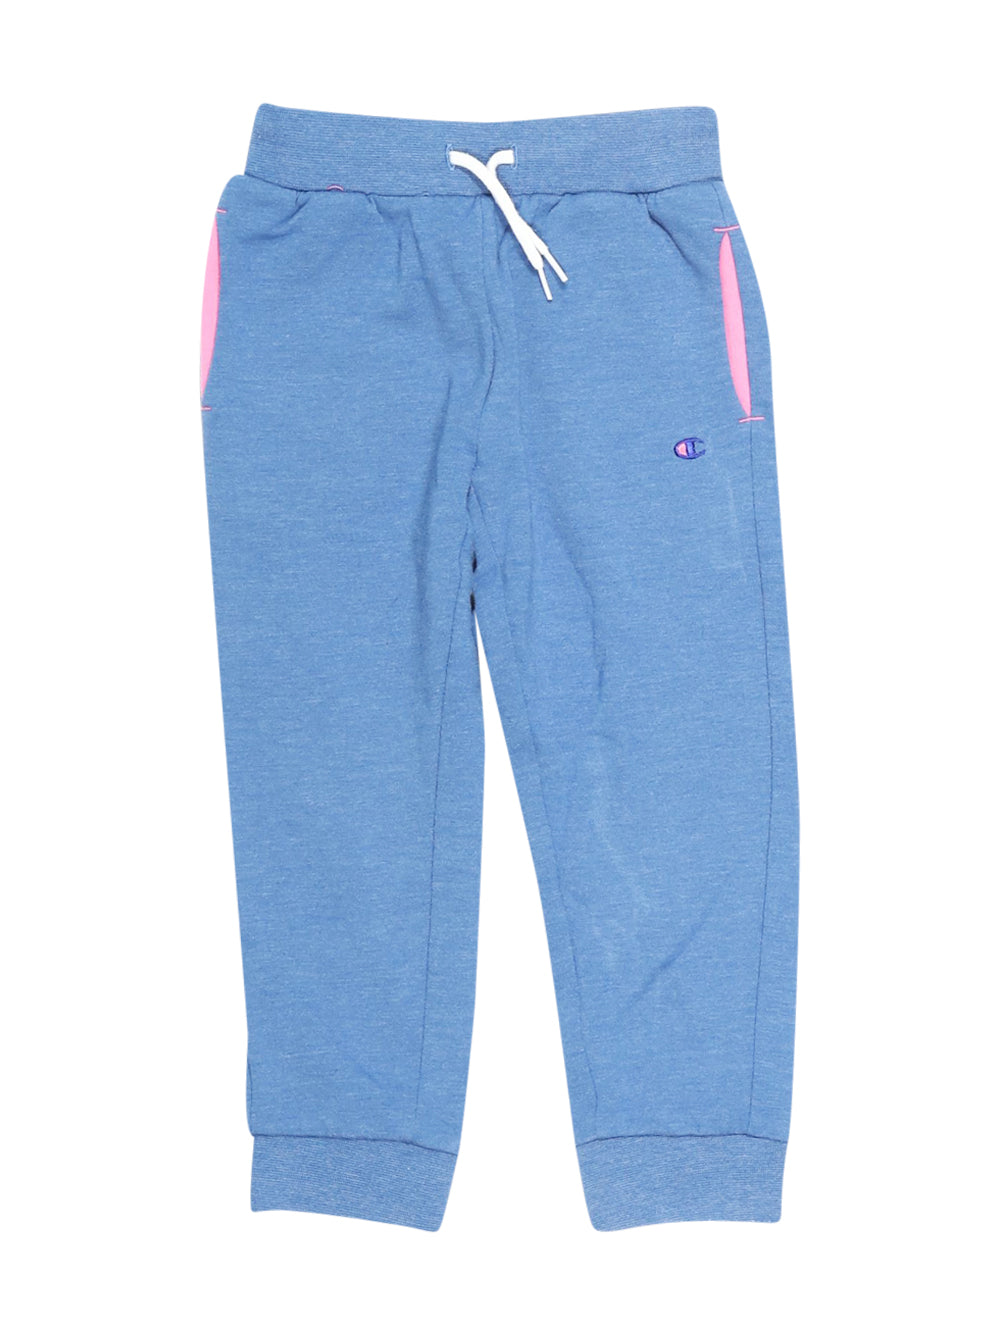 Front photo of Preloved Champion Blue Girl's trousers - size 18-24 mths